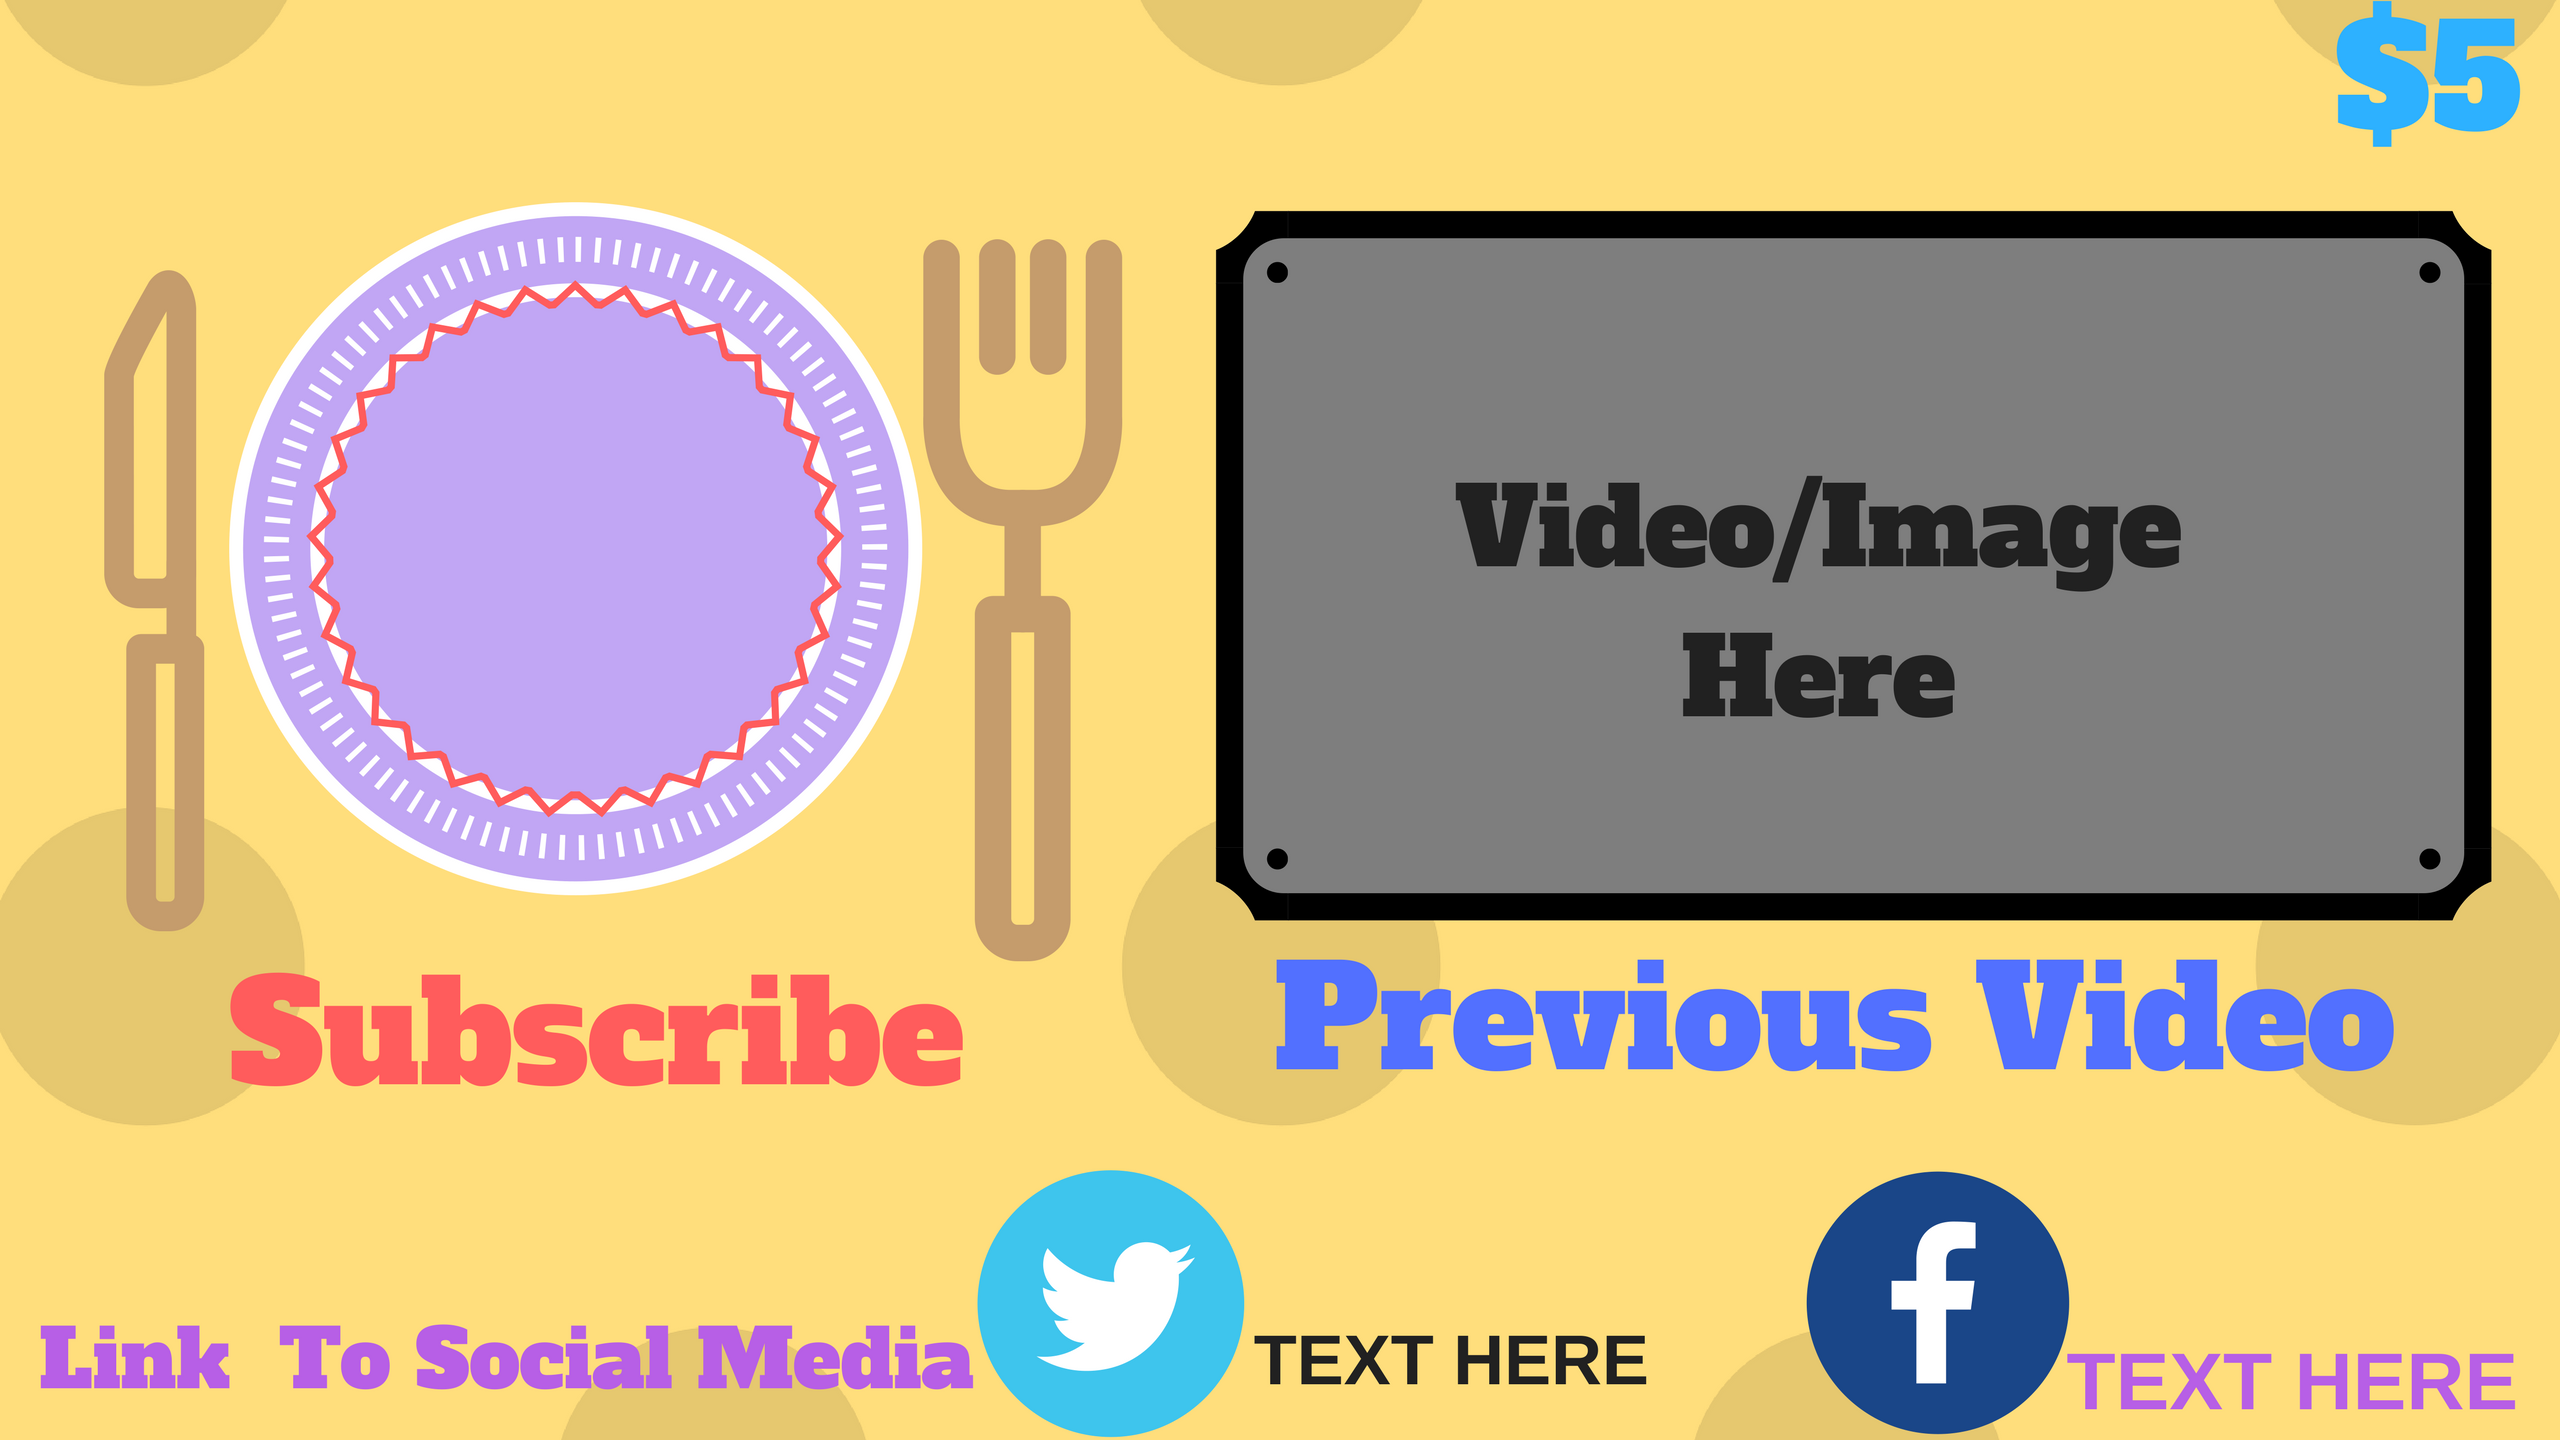 Standard Outro For Food Channels